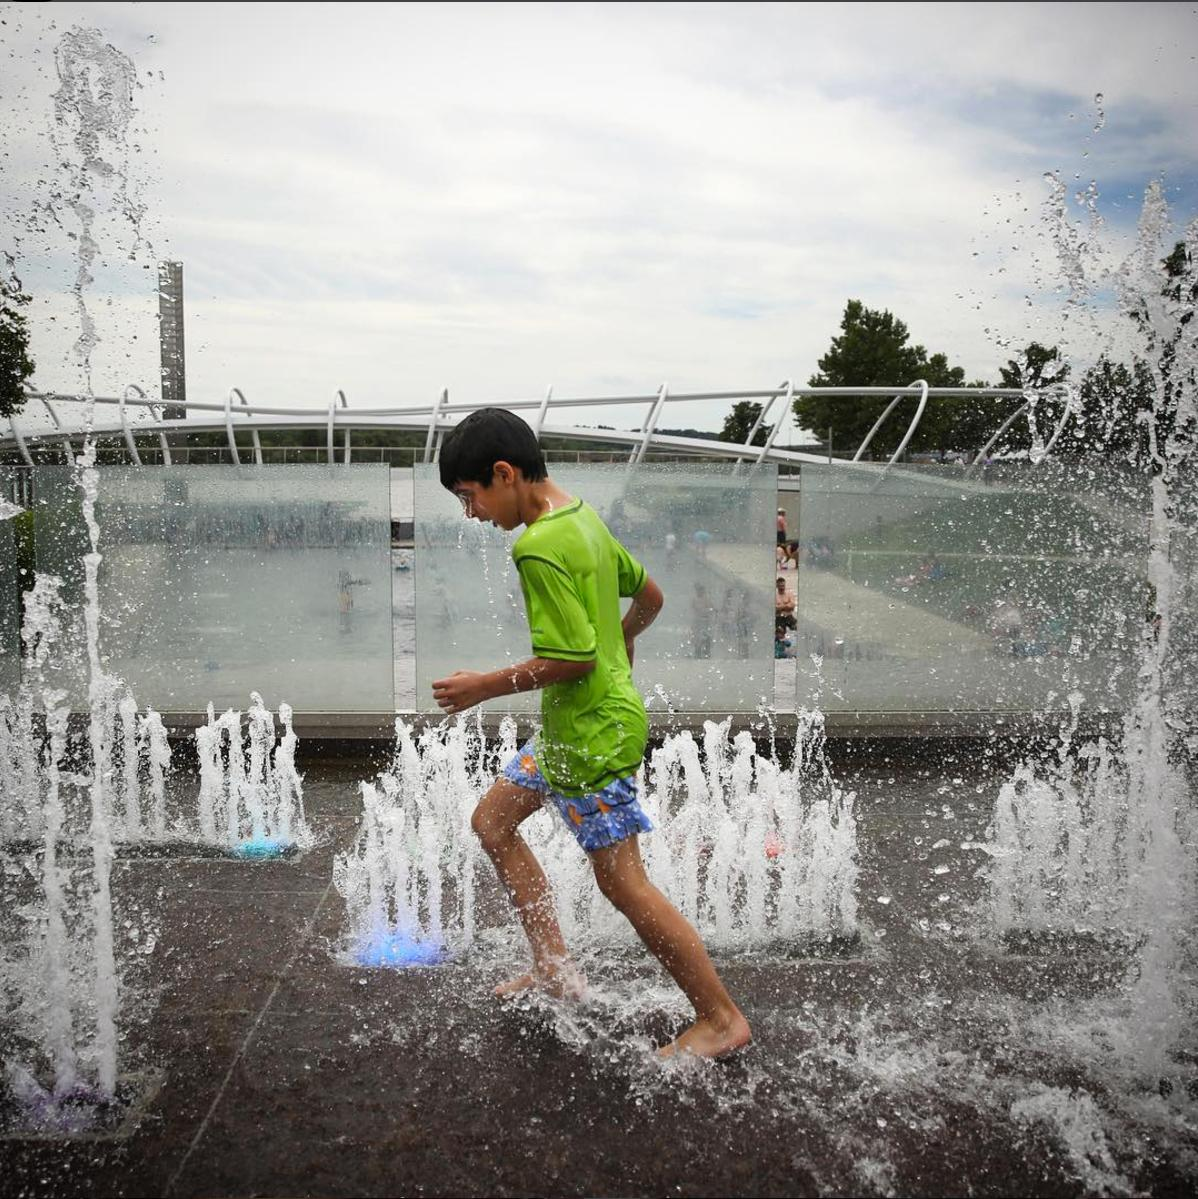 The Yards Park also has public water features that are super popular in summer. (Image via @moxie_manda)